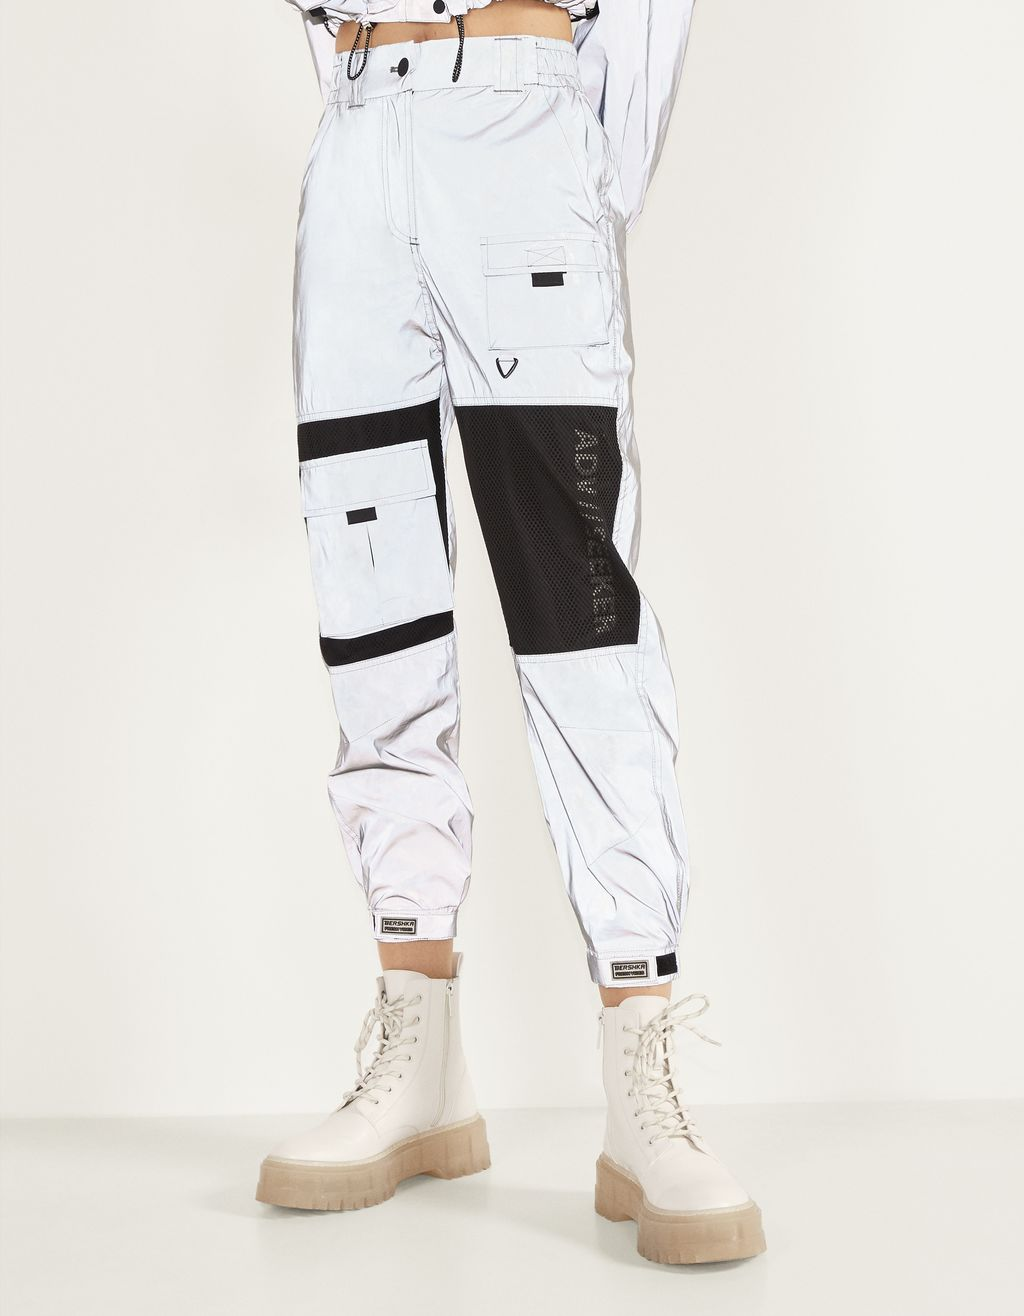 Cargo sweatpants with reflective detail